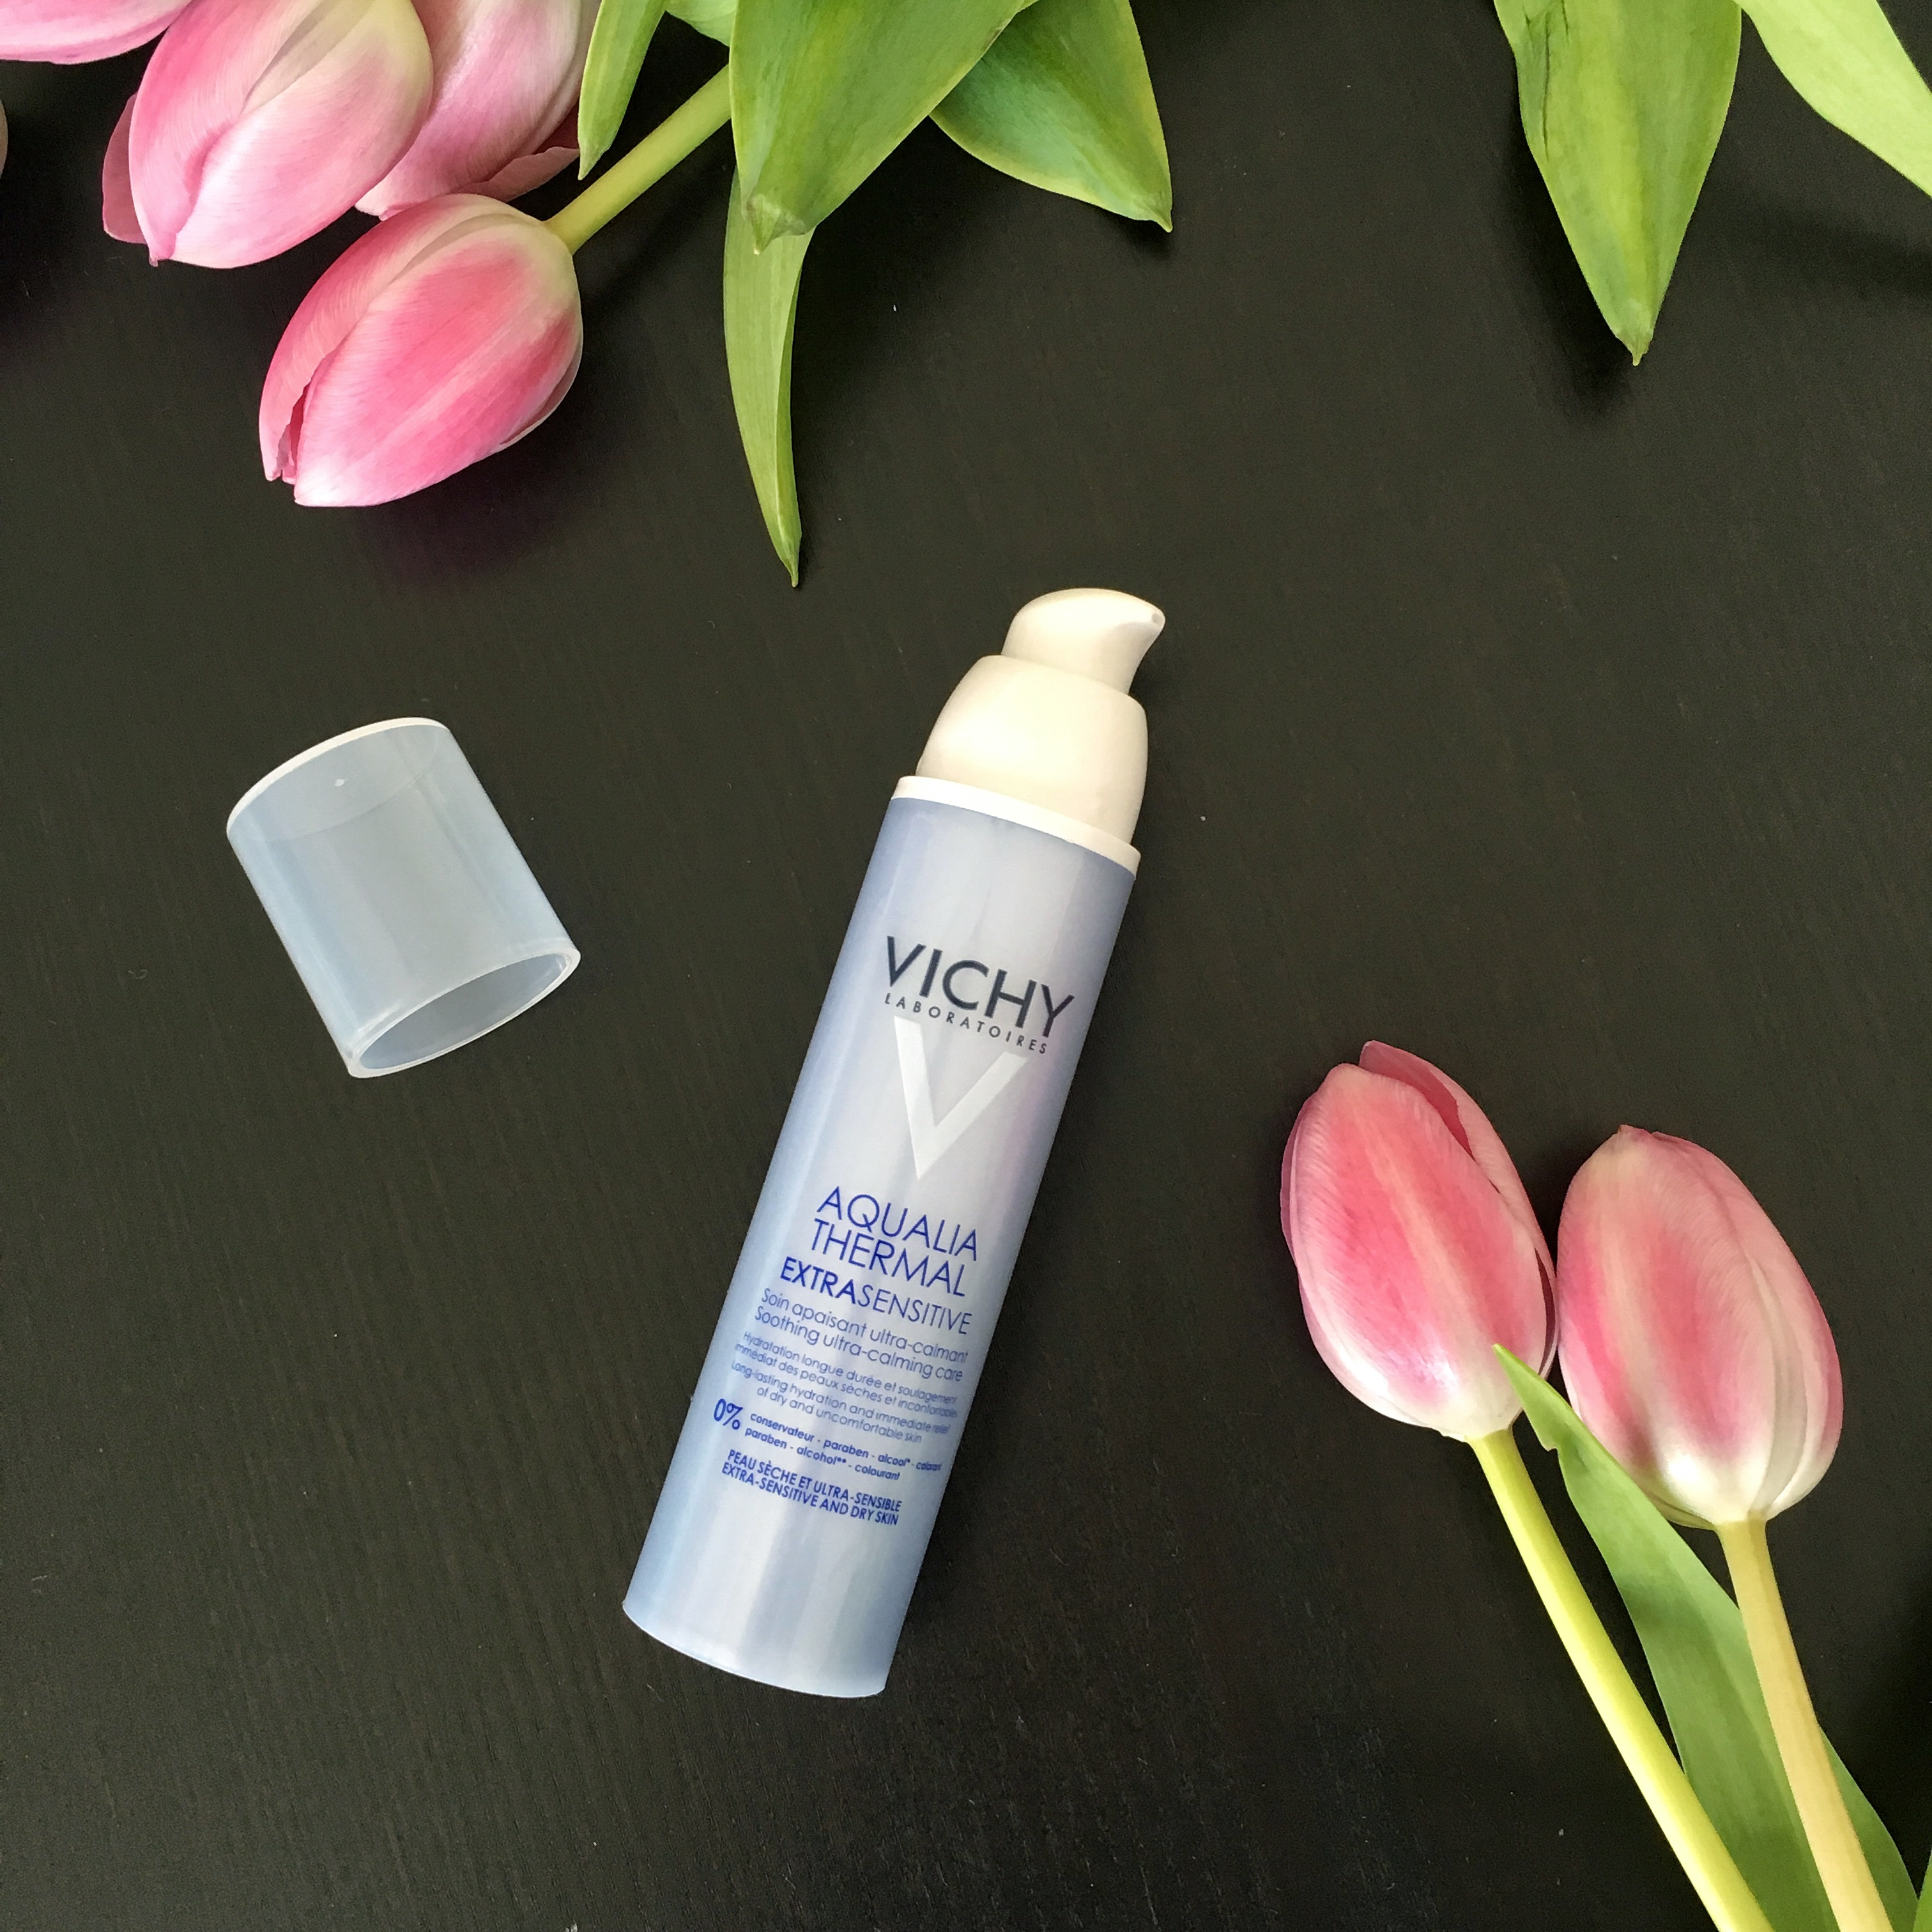 Produkttest: Vichy Aqualia Thermal